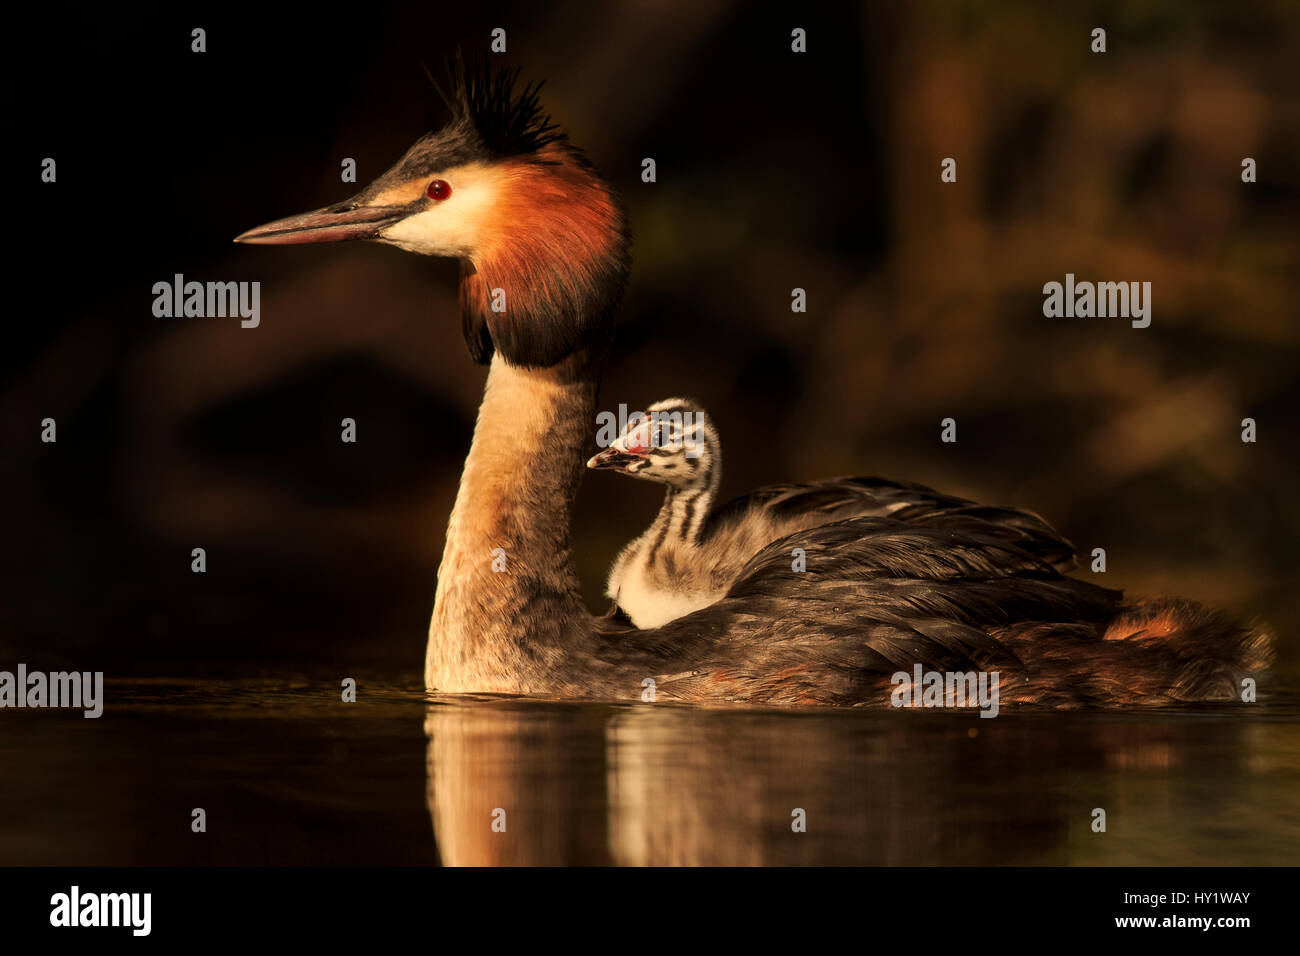 Great crested grebe (Podiceps cristatus cristatus) with young chick on back,  Cardiff, UK, April. - Stock Image